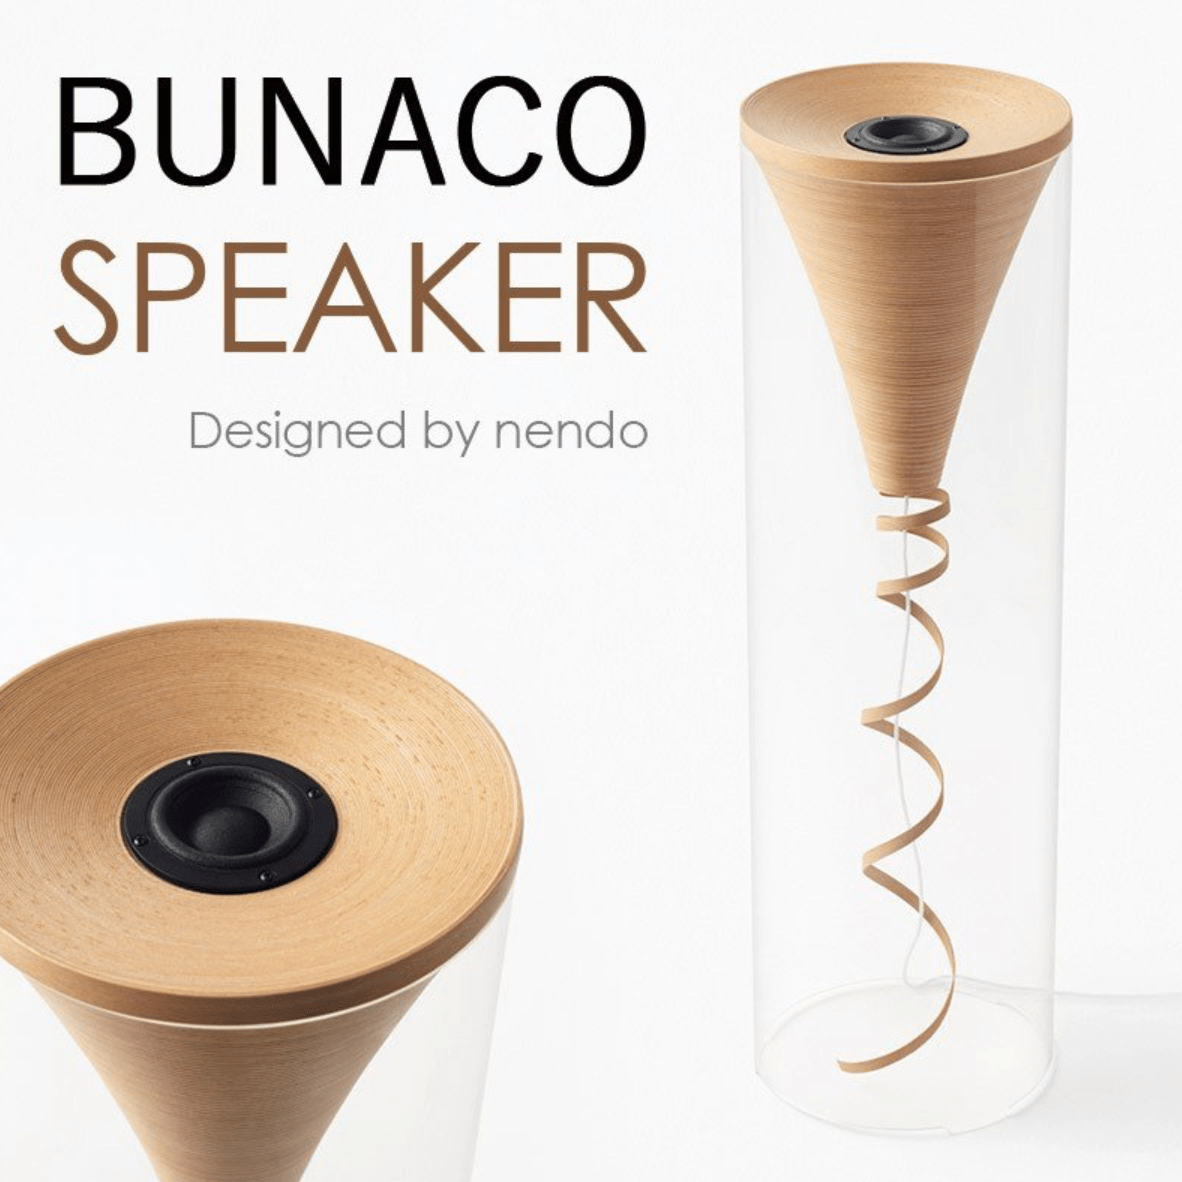 BUNACO SPEAKER designed by nendo